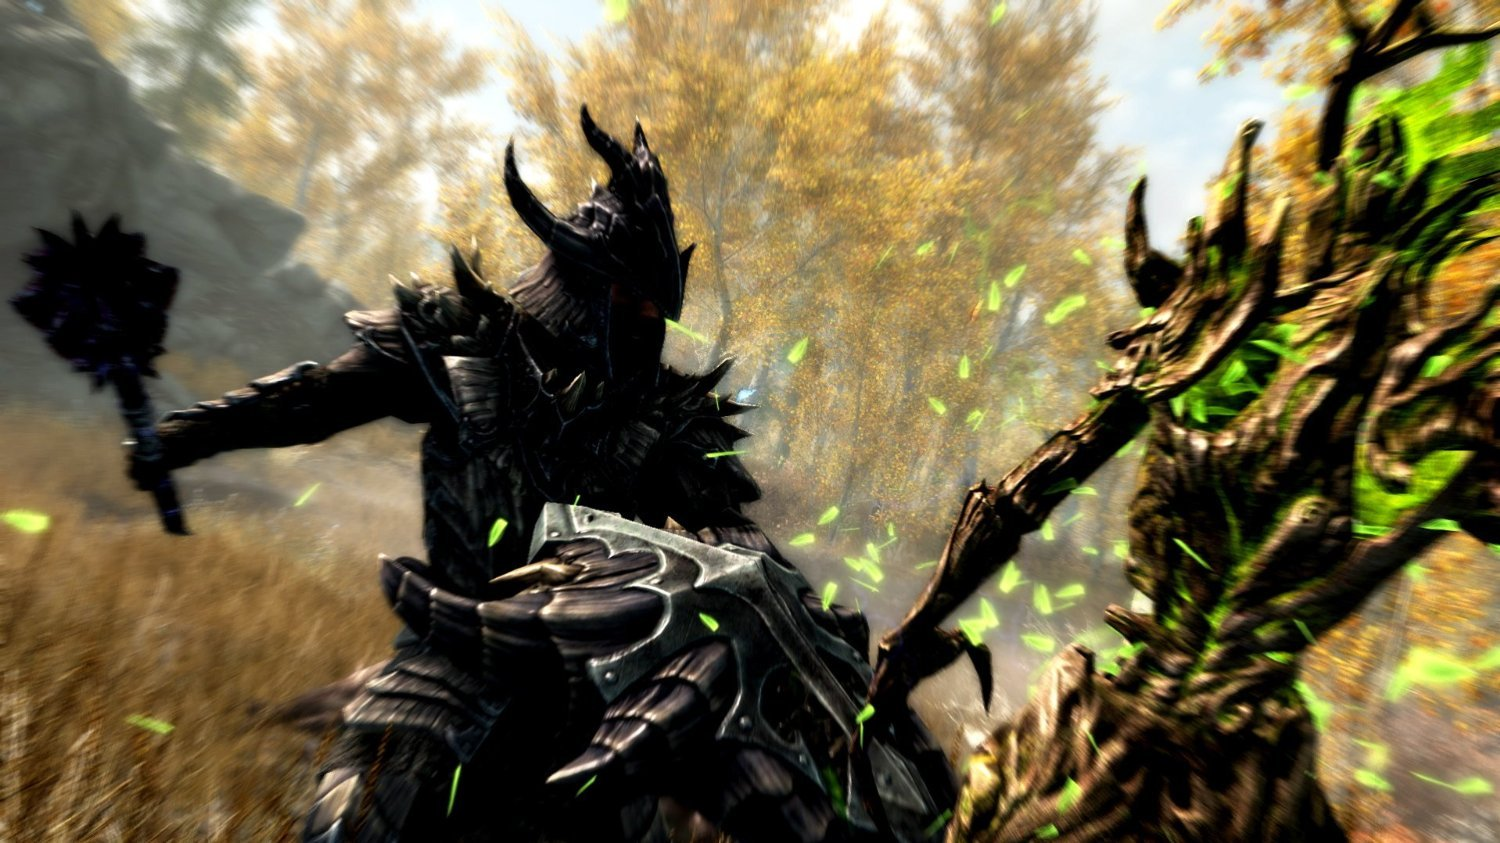 The Elder Scrolls V: Skyrim – Special Edition (PC) Review 3